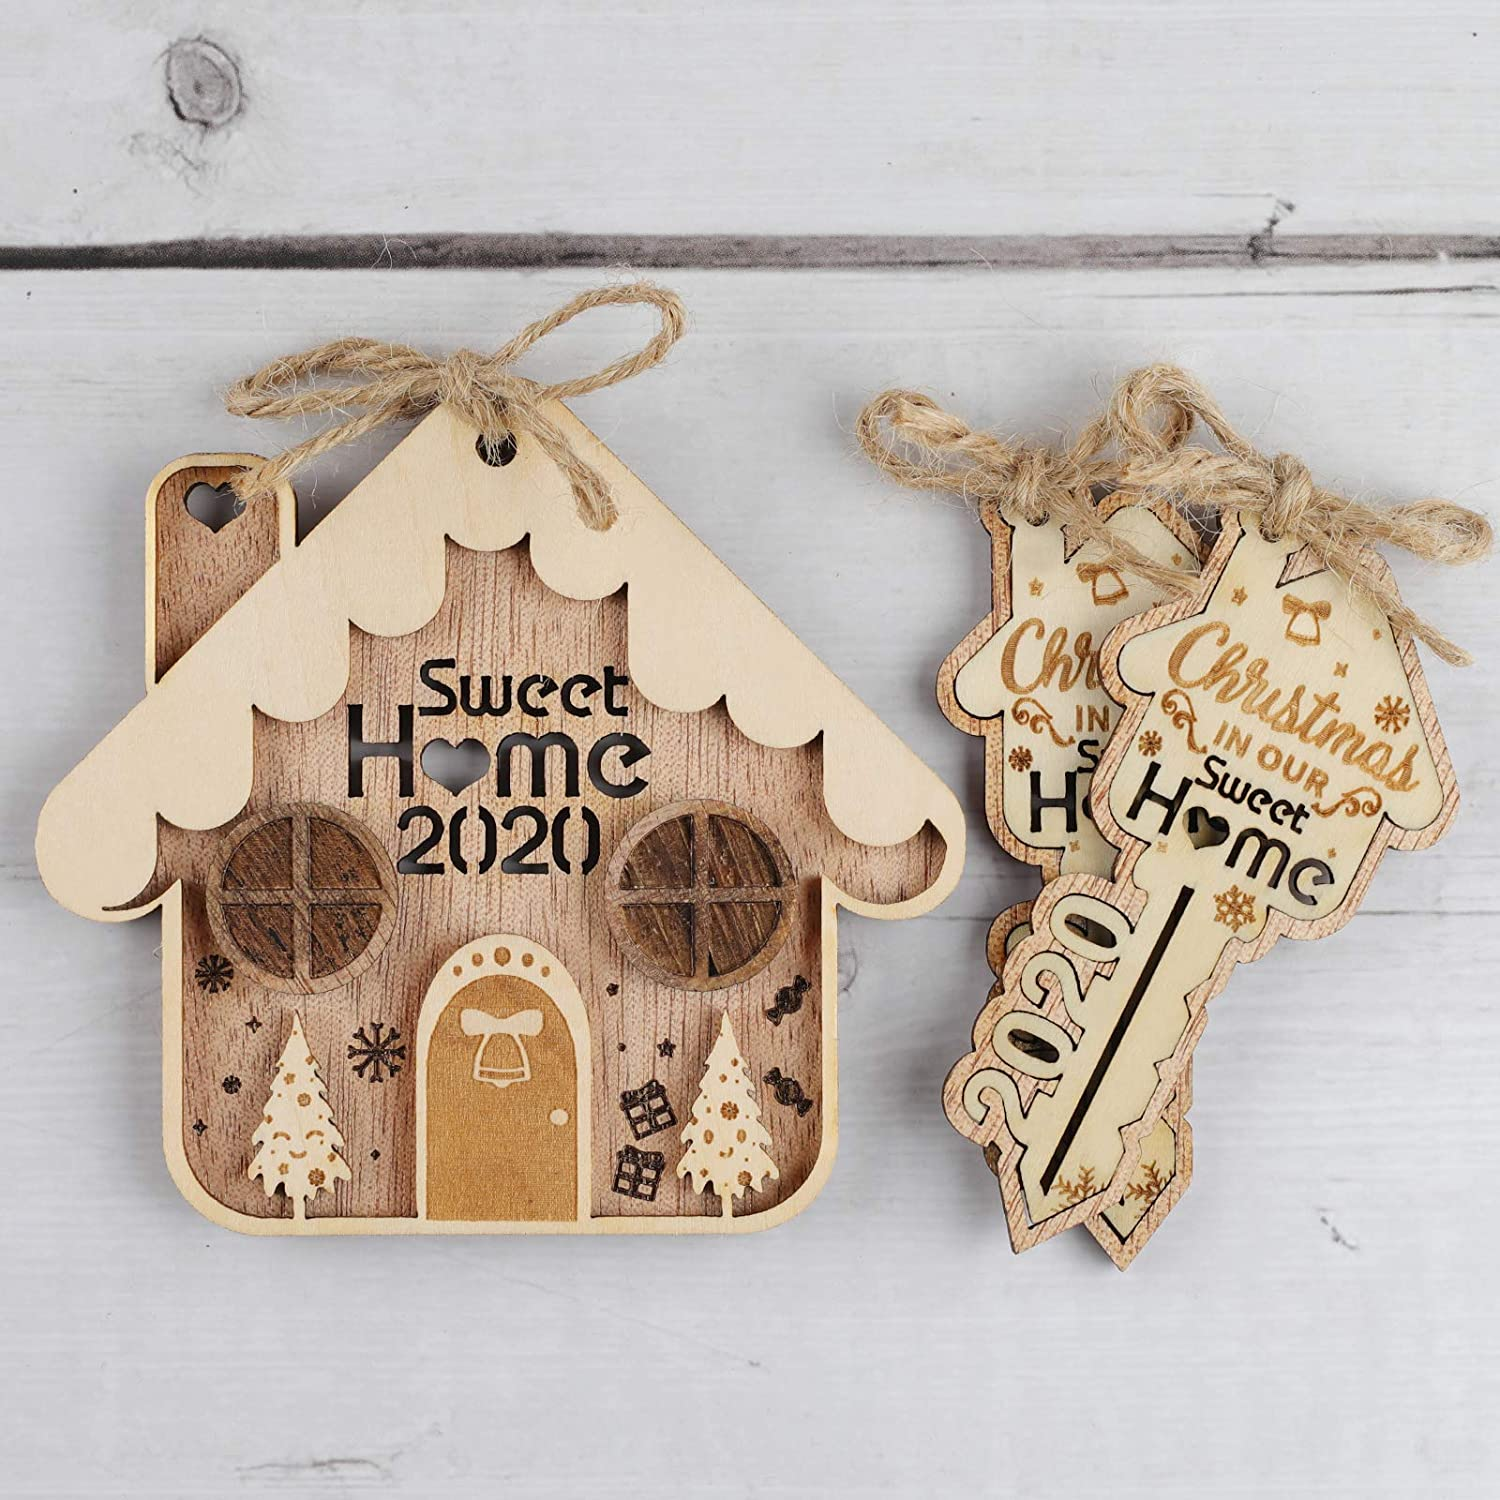 Creawoo Pack of 3 Christmas in Our Sweet Home Ornaments, Perfect Xmas Key Home Ornaments 2020 Gift for Homeowner Housewarming Party, Double Layer Wooden Decoration for Tree